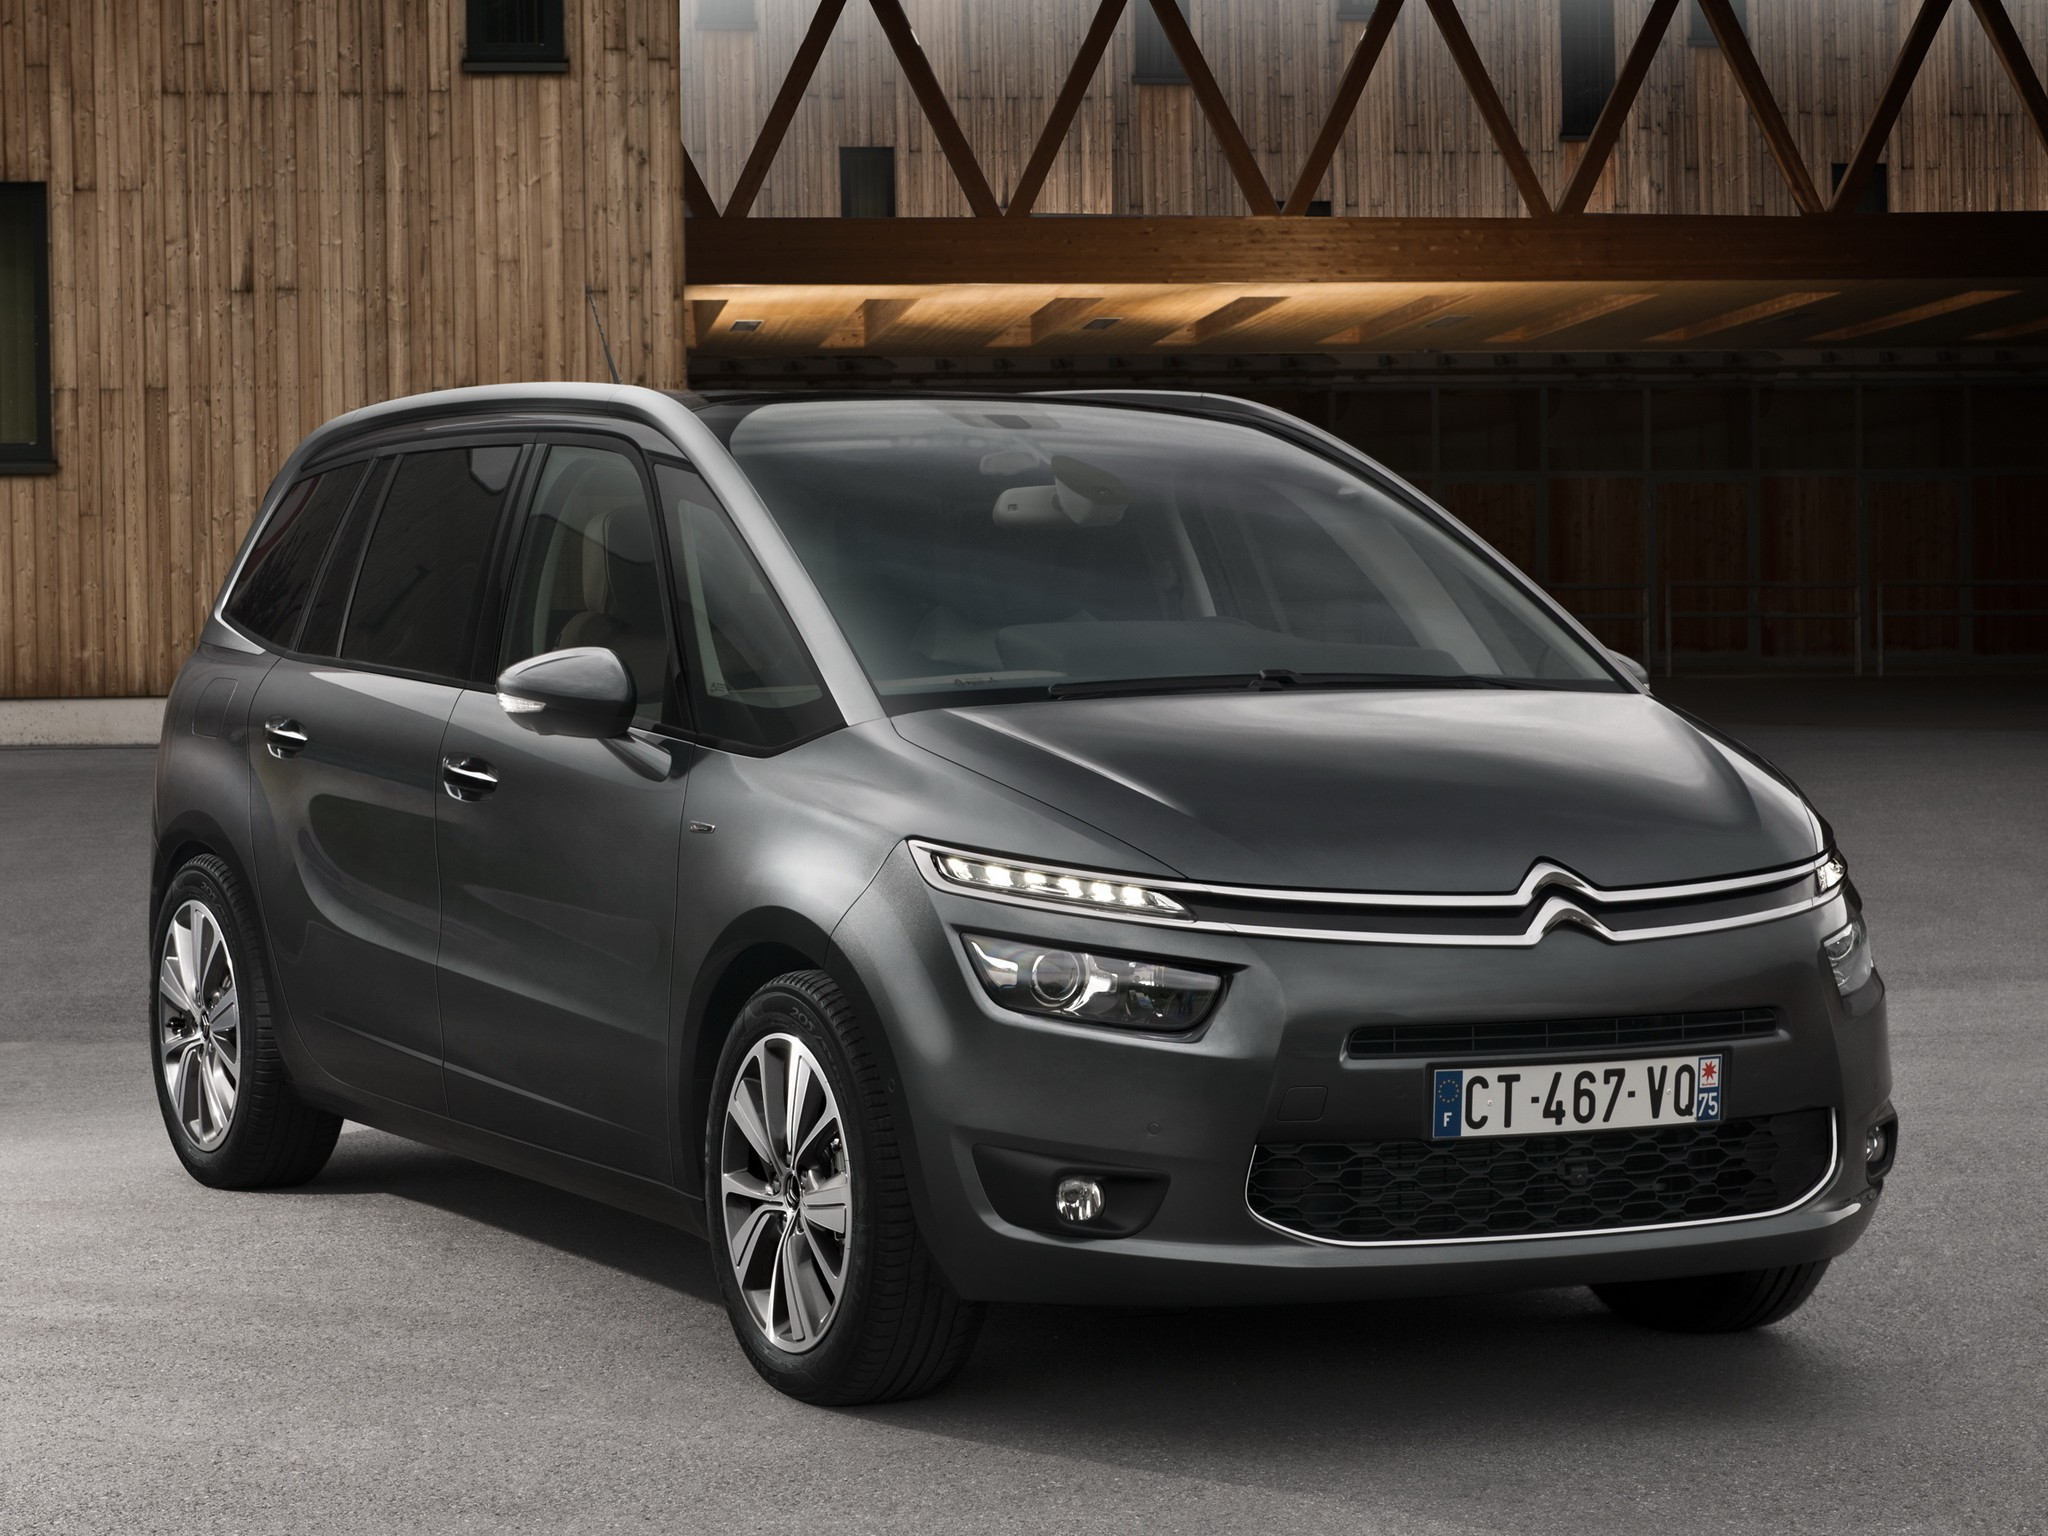 citroen grand c4 picasso specs photos 2013 2014 2015 2016 autoevolution. Black Bedroom Furniture Sets. Home Design Ideas